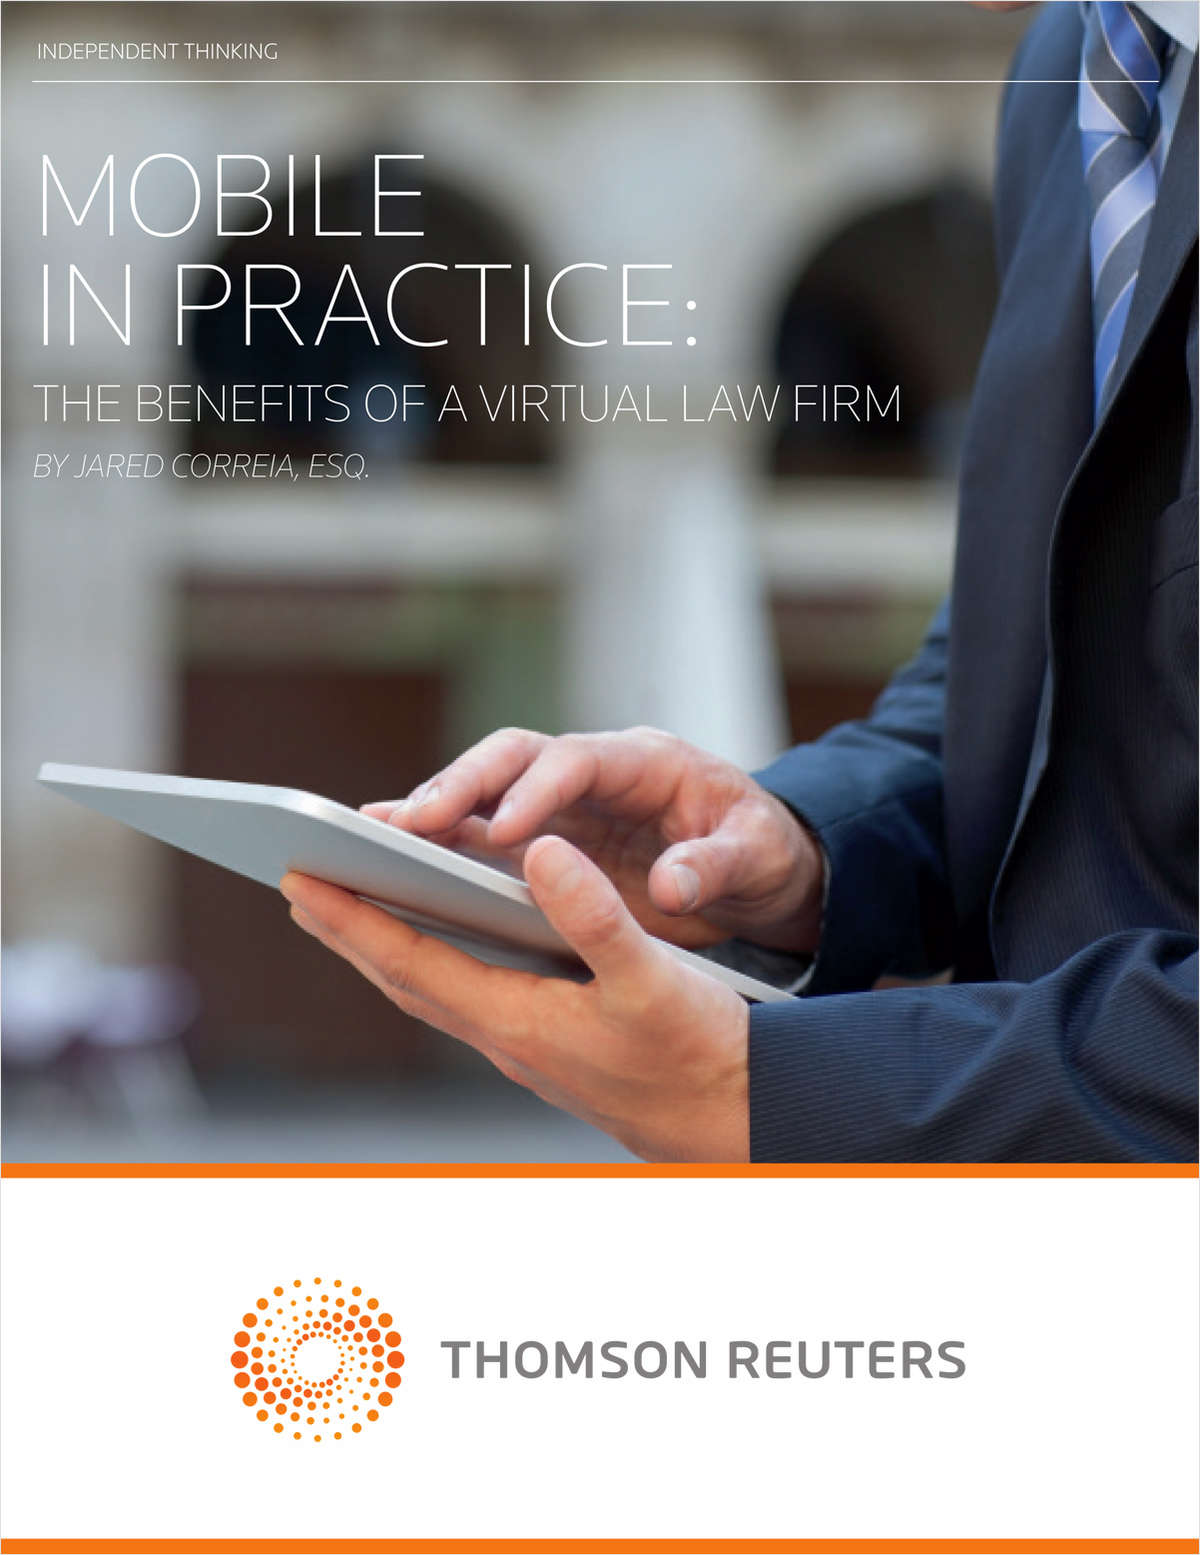 Mobile in Practice: Benefits of a Virtual Law Firm